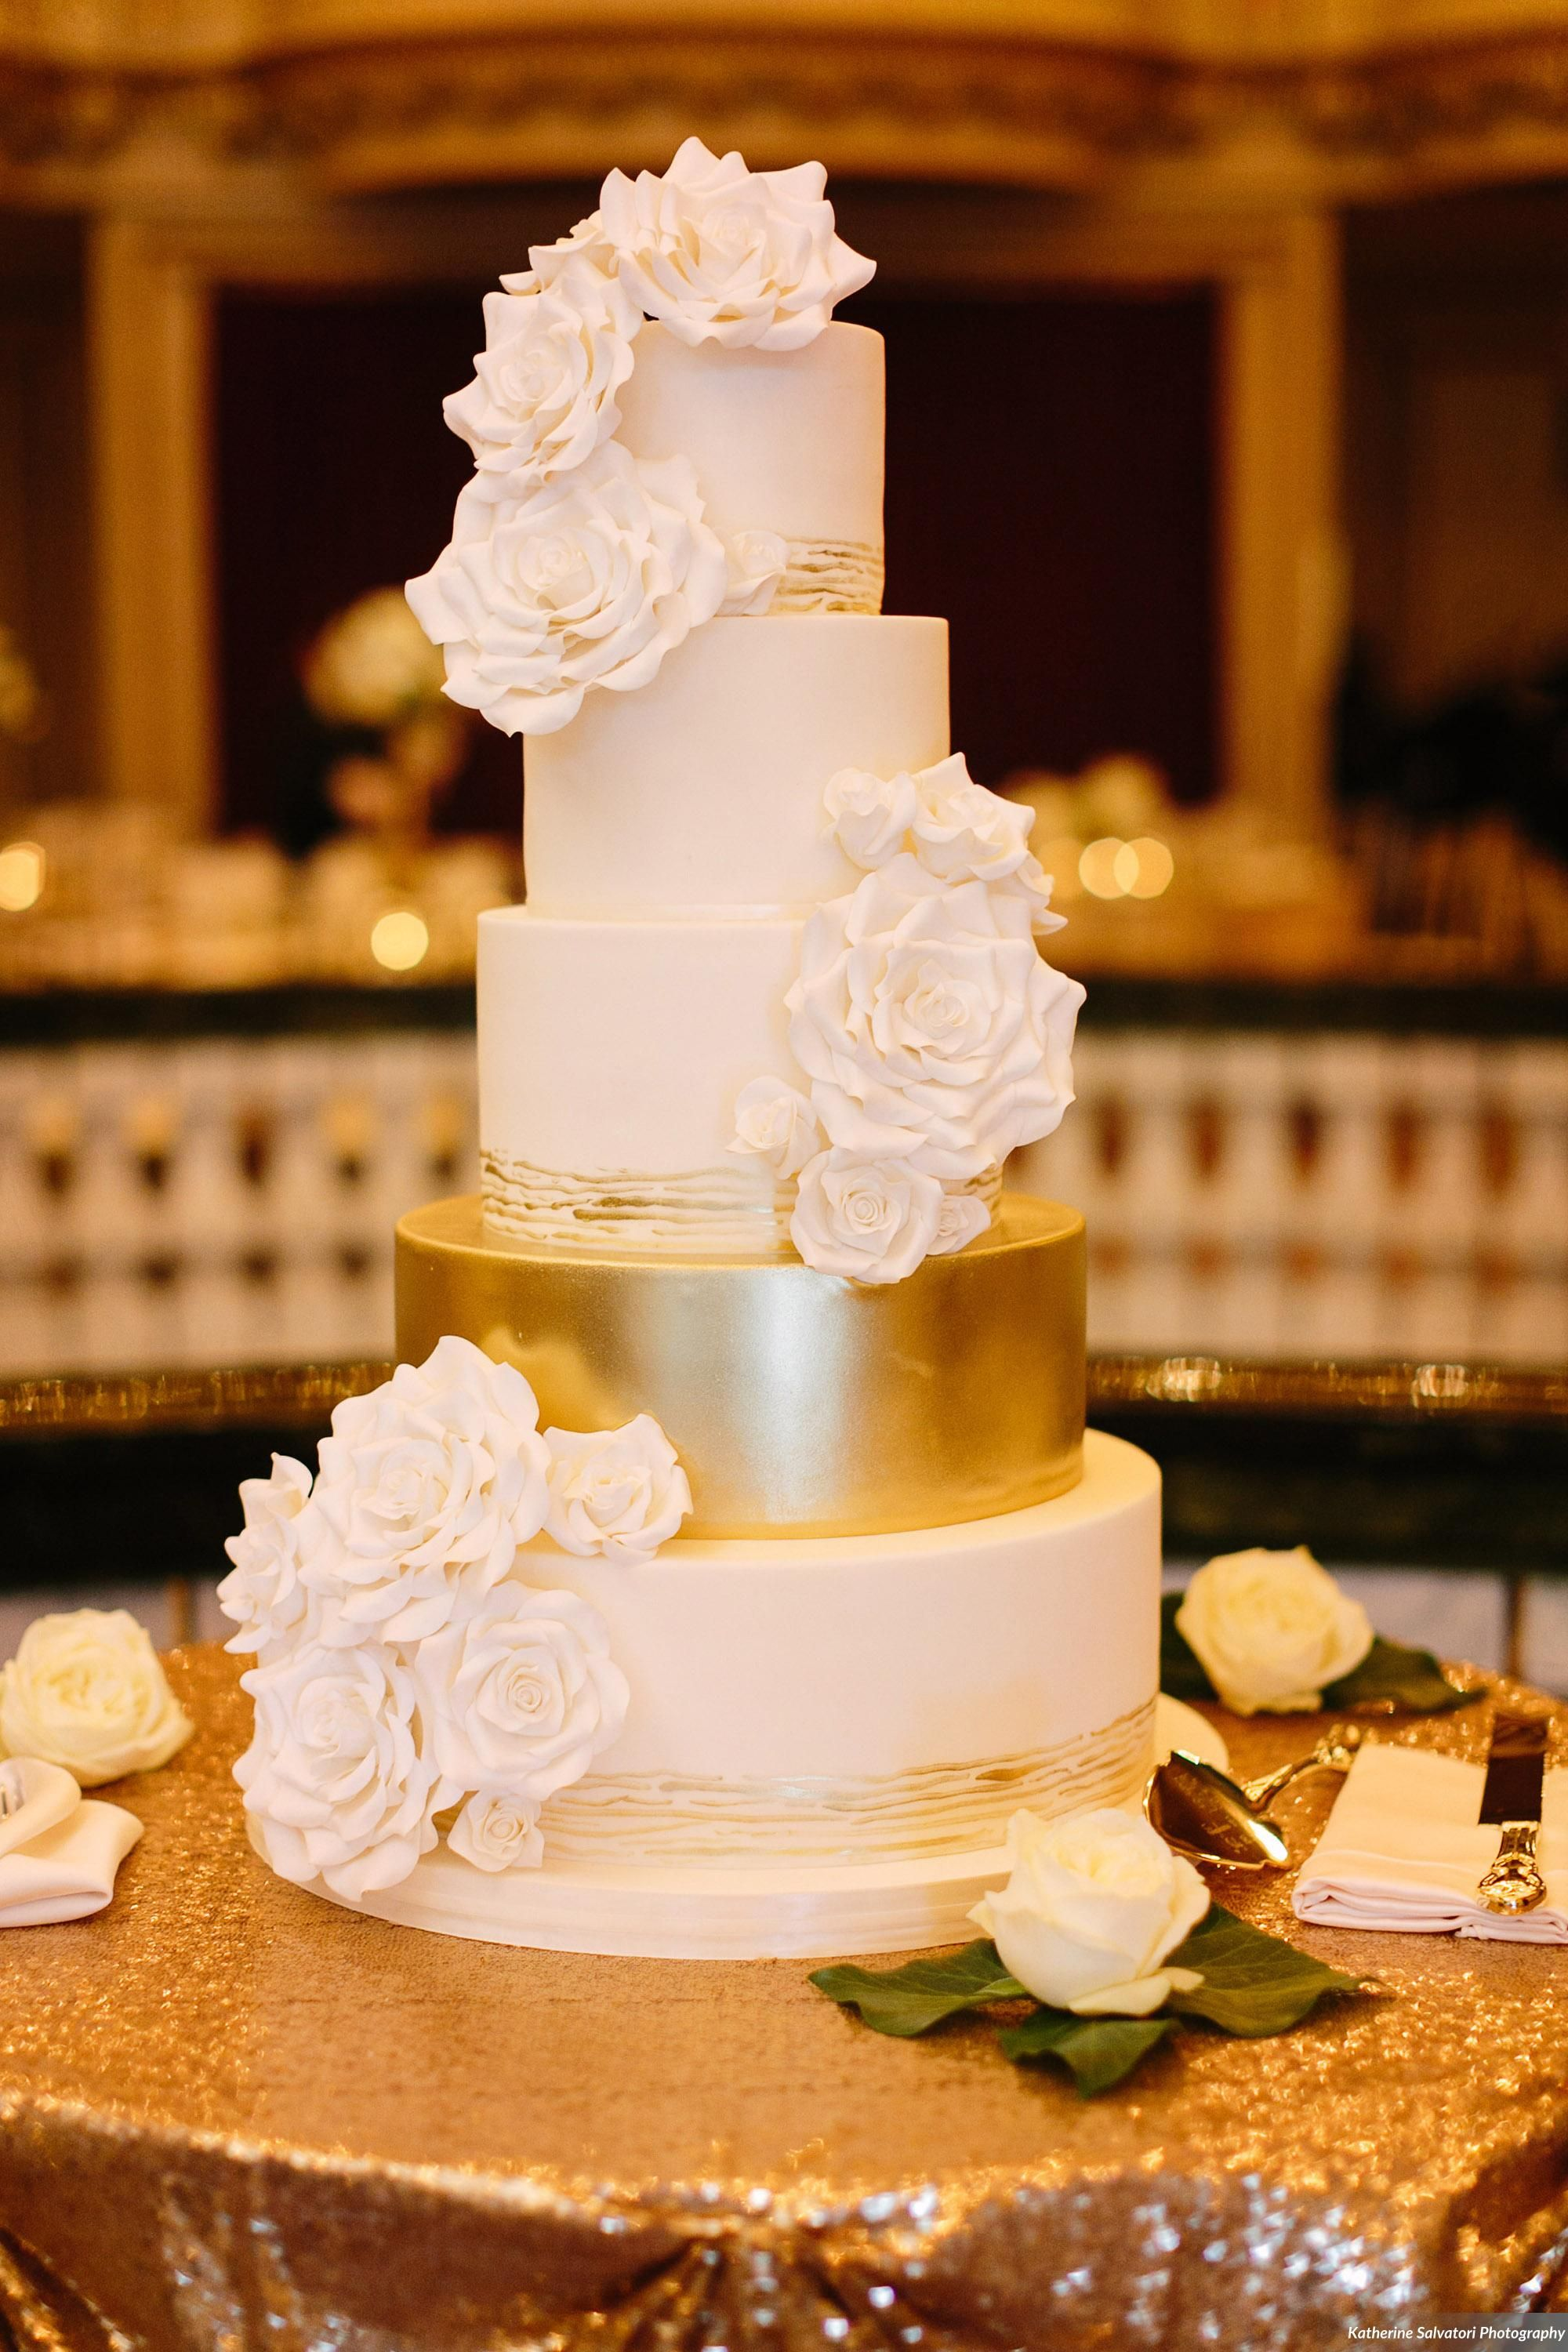 5 Tier Wedding Cake With White Sugar Roses And Hand